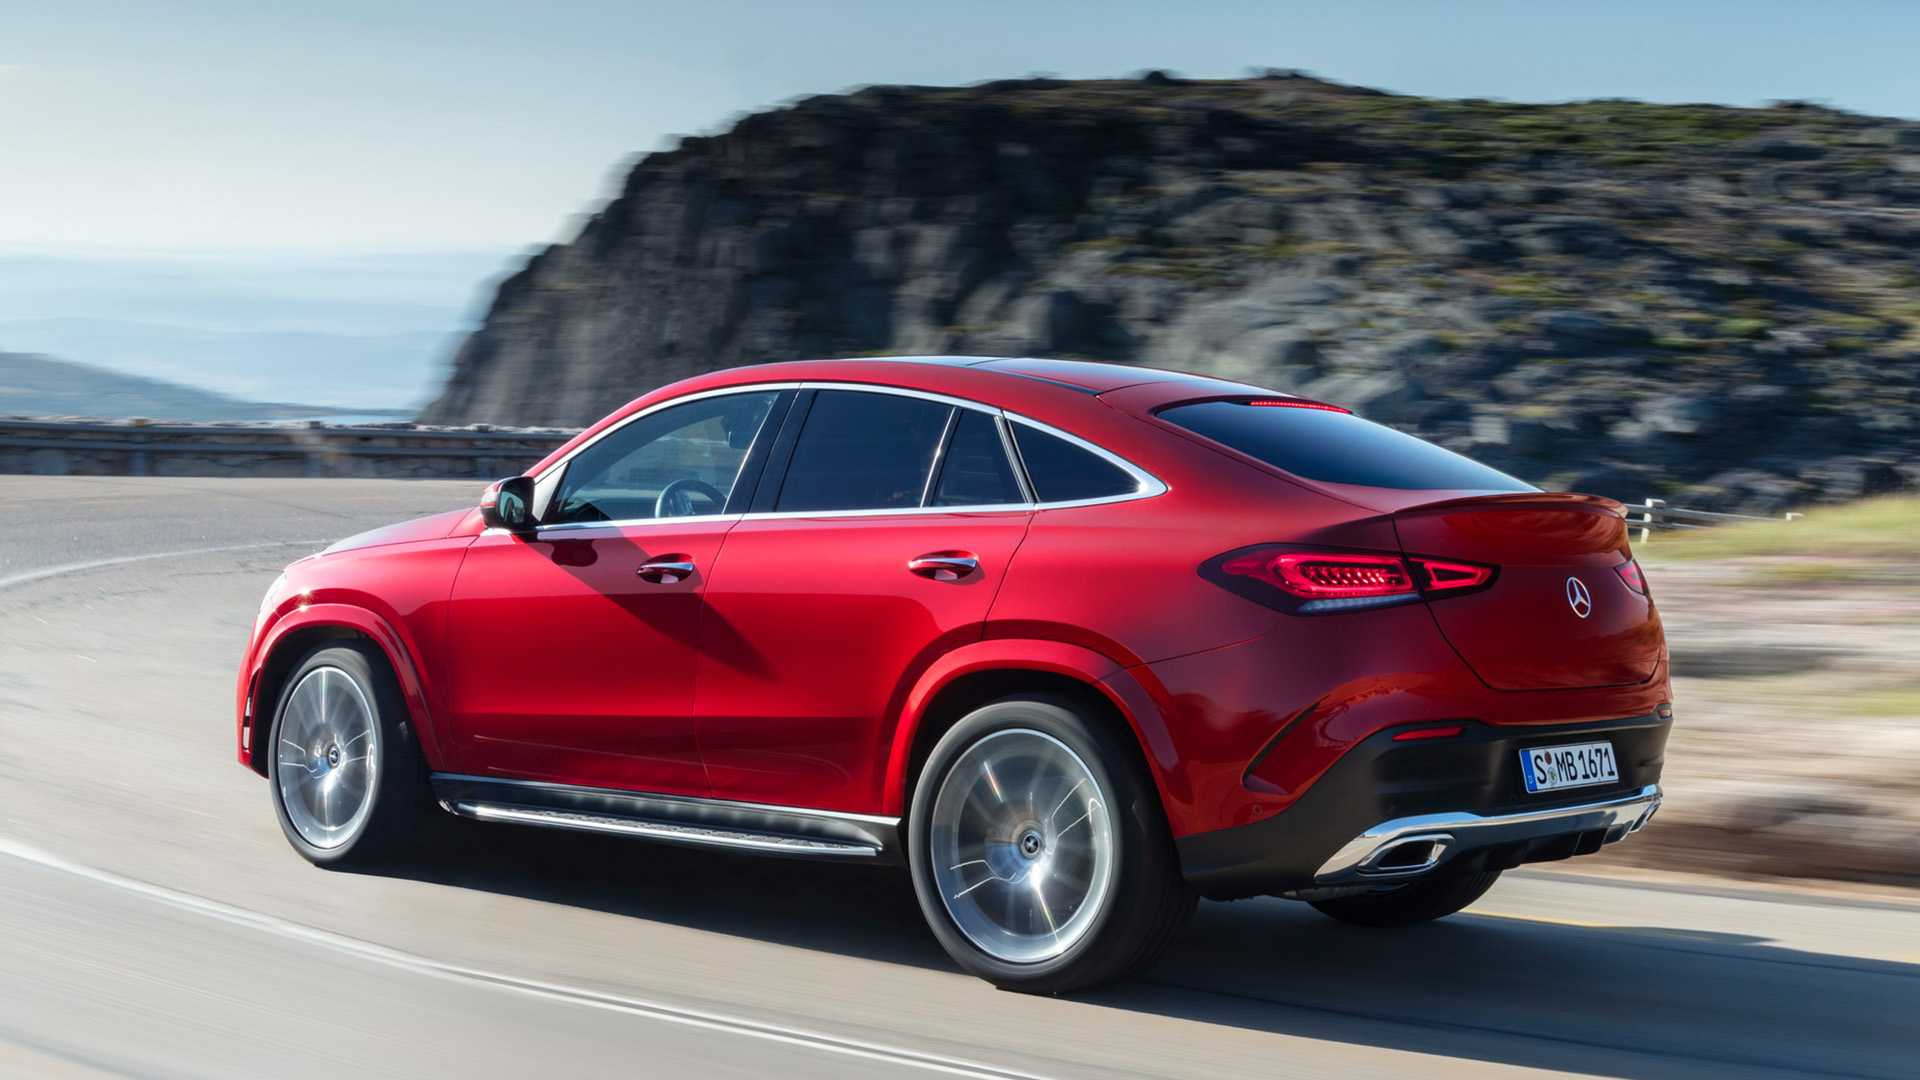 2021 Mercedes-Benz GLE Coupe (Color: Designo Hyacinth Red Metallic) Rear Three-Quarter Wallpapers (5)